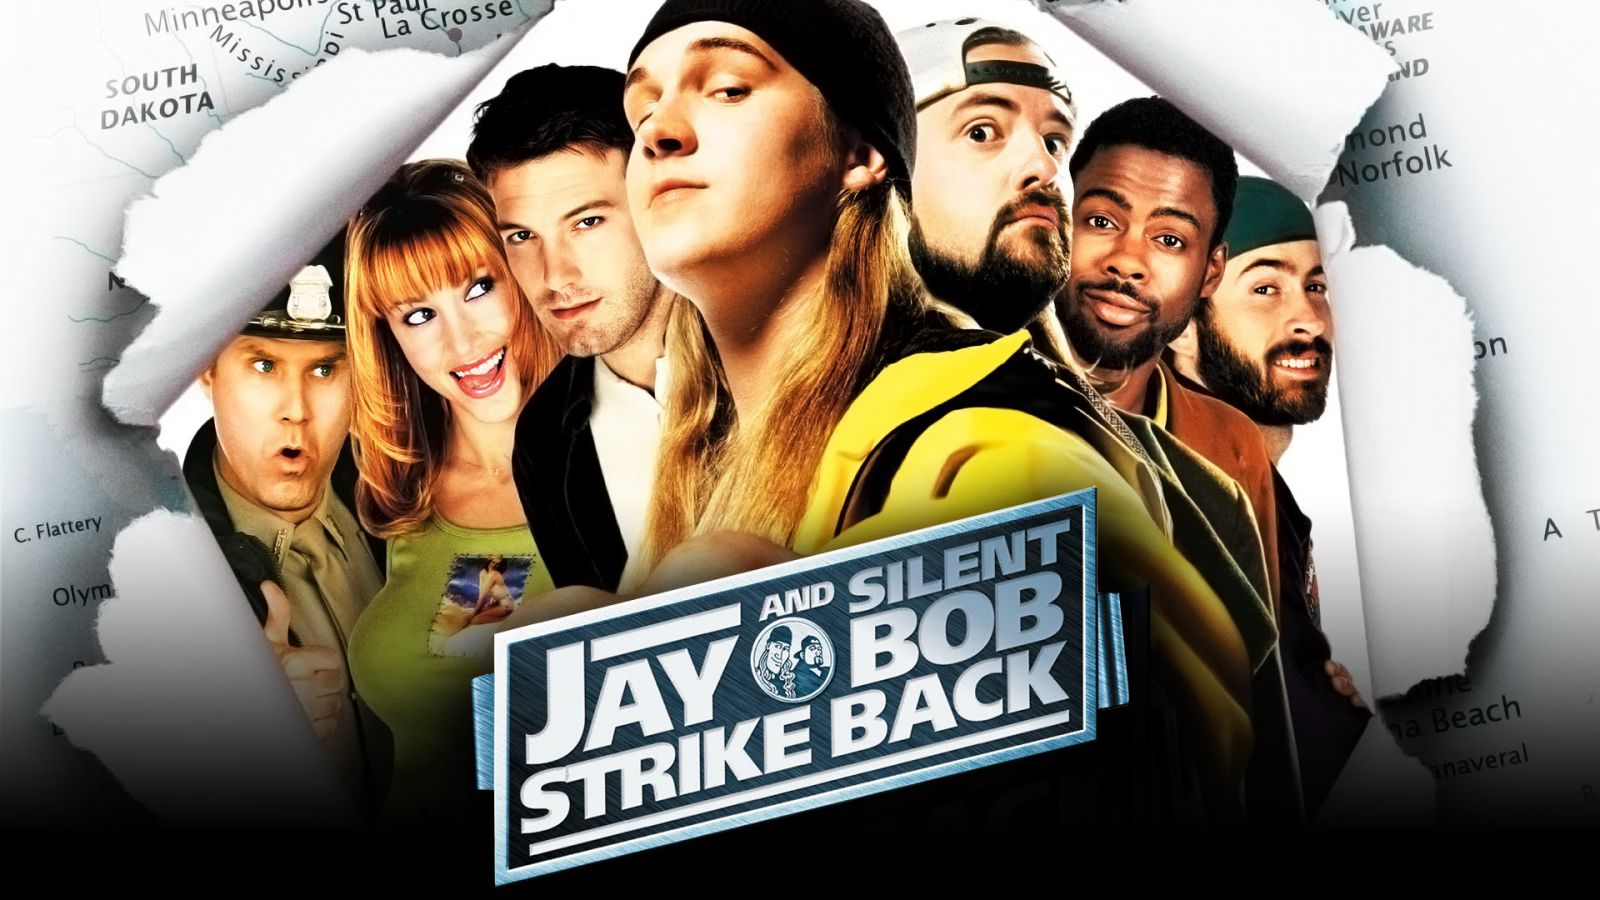 Jay and Silent Bob Strike Back Wallpaper